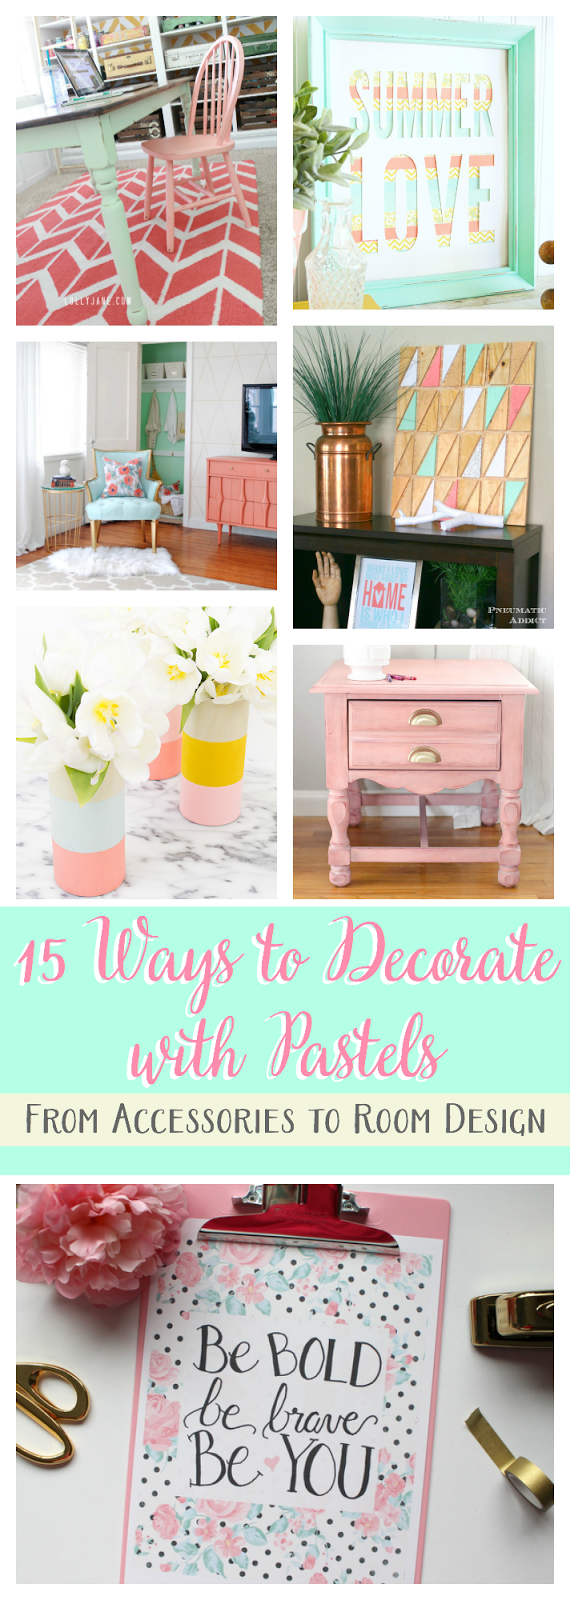 Ways to Decorate with Pastels